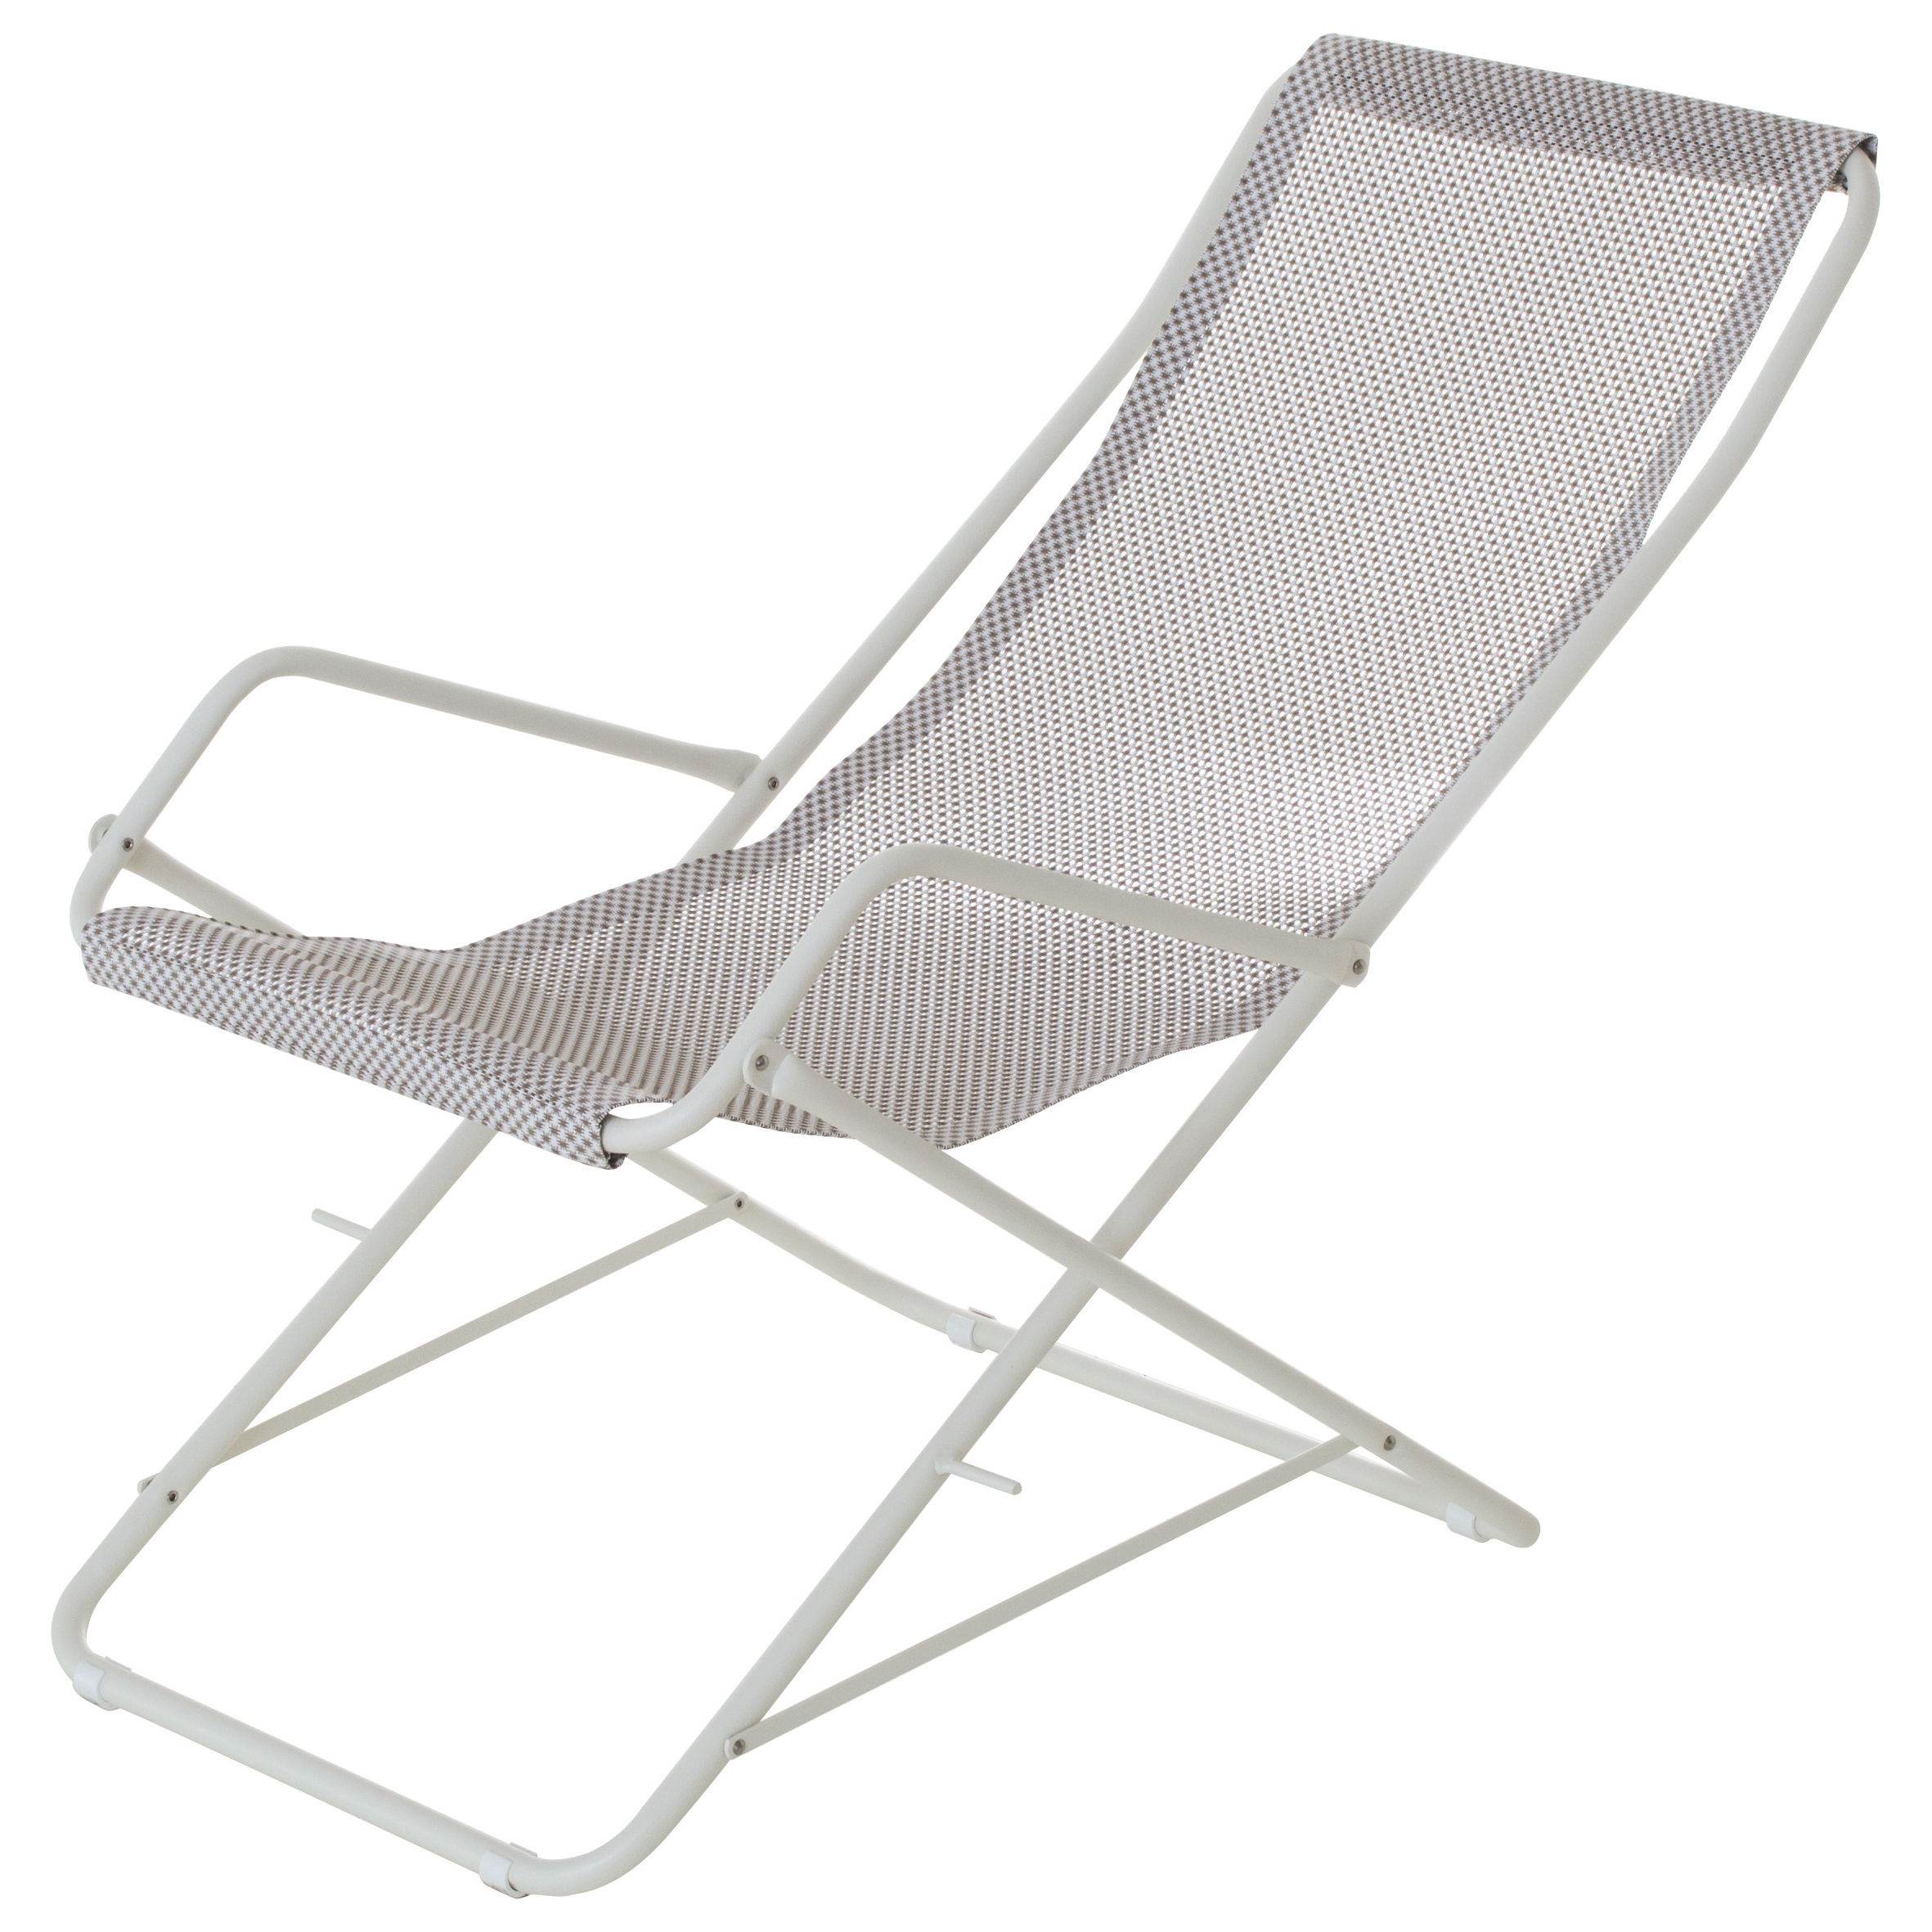 Outdoor - Sun Loungers & Hammocks - Bahama Reclining chair - Folding by Emu - Grey-white / White structure - Cloth, Varnished steel